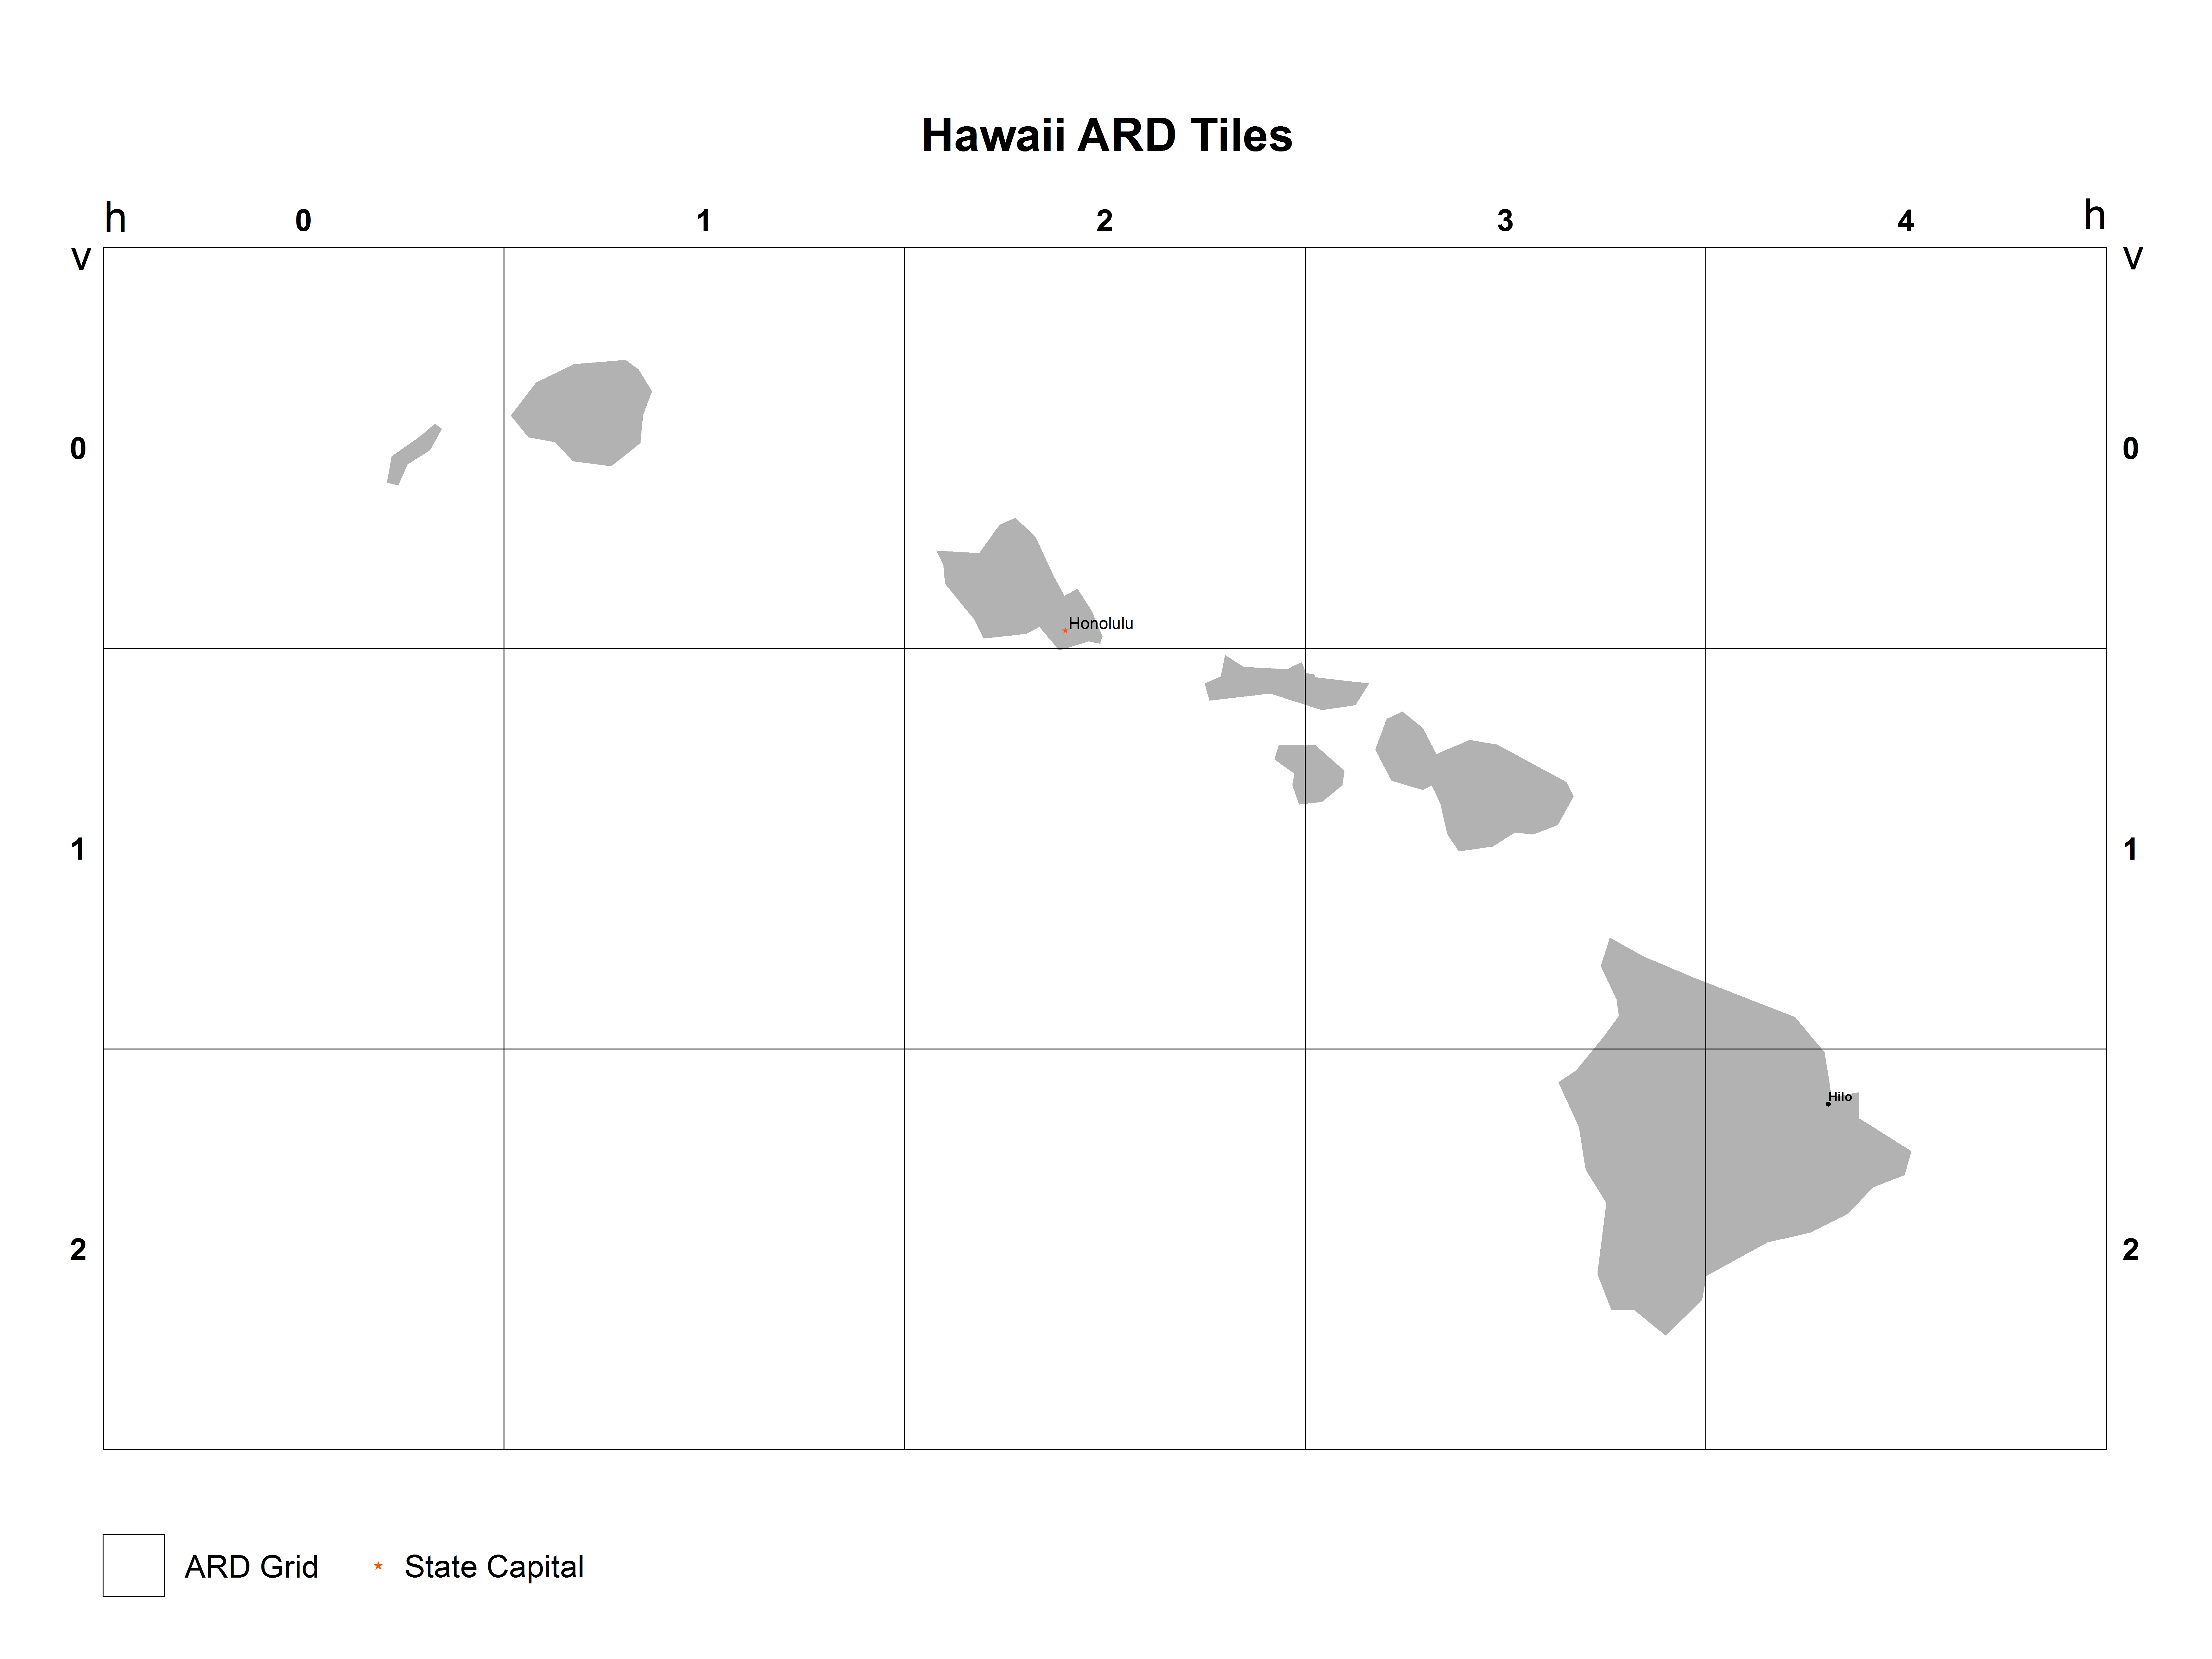 Hawaii Analysis Ready Data (ARD) Tile Map